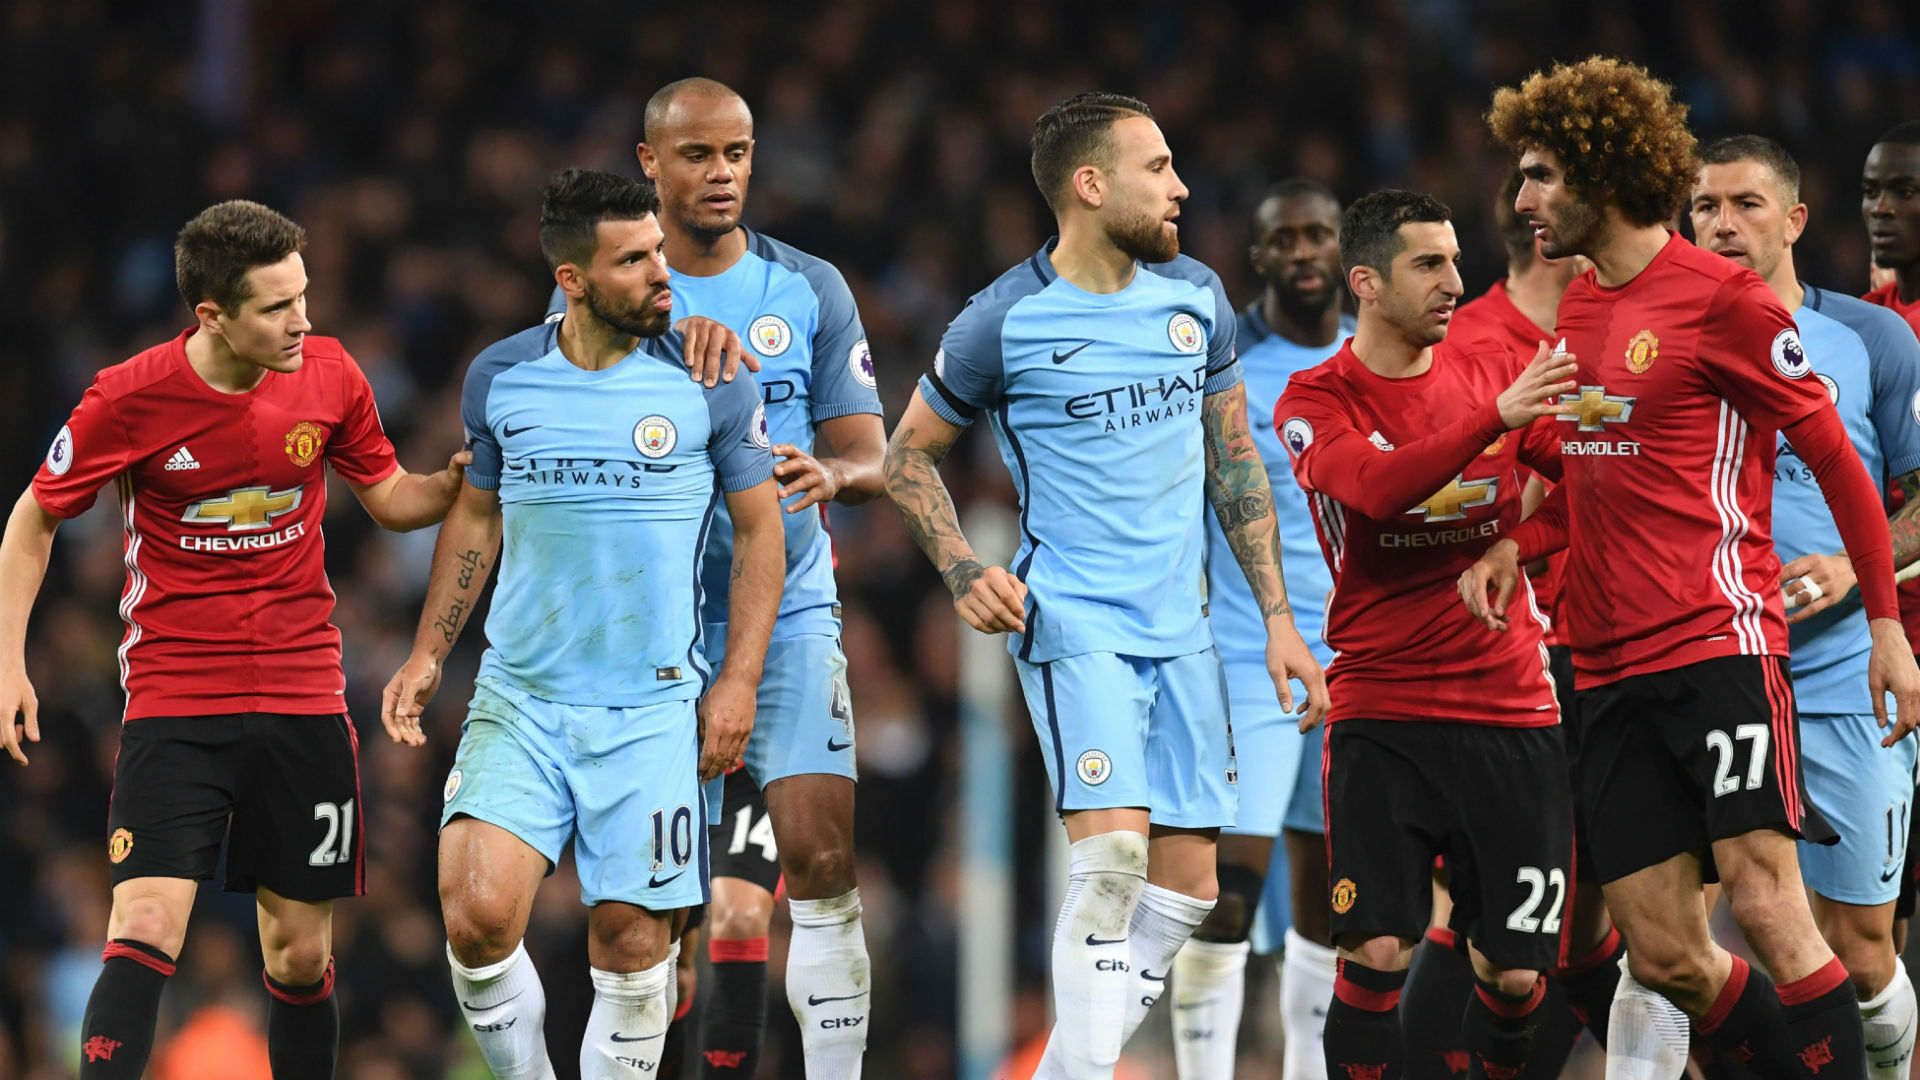 man united vs man city - photo #12